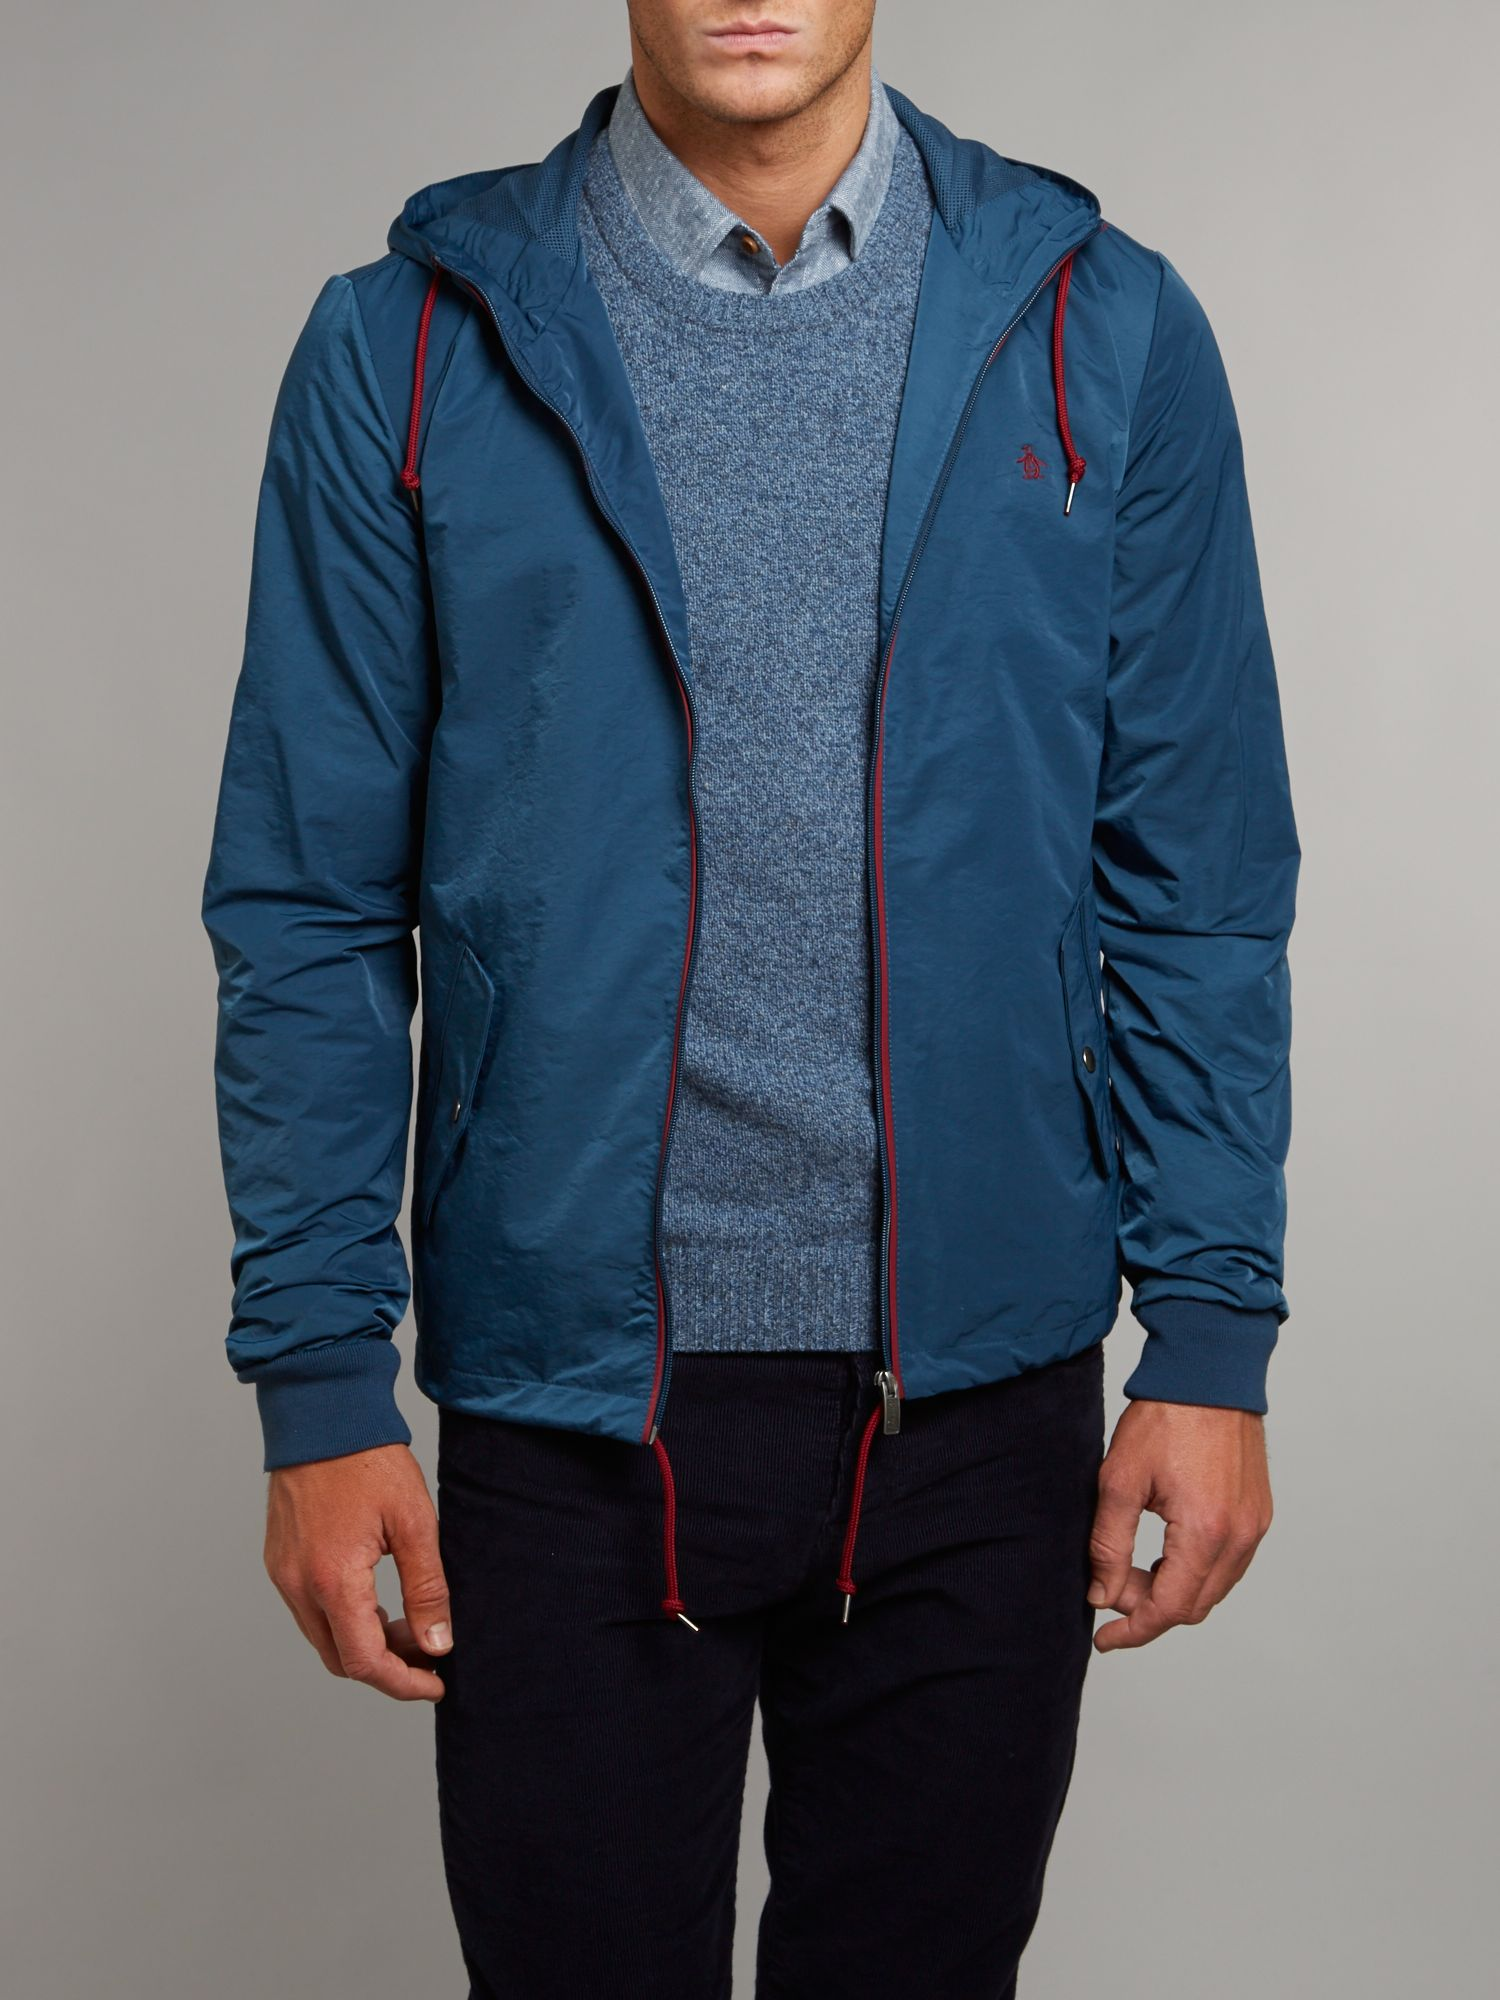 Hooded ranter jacket